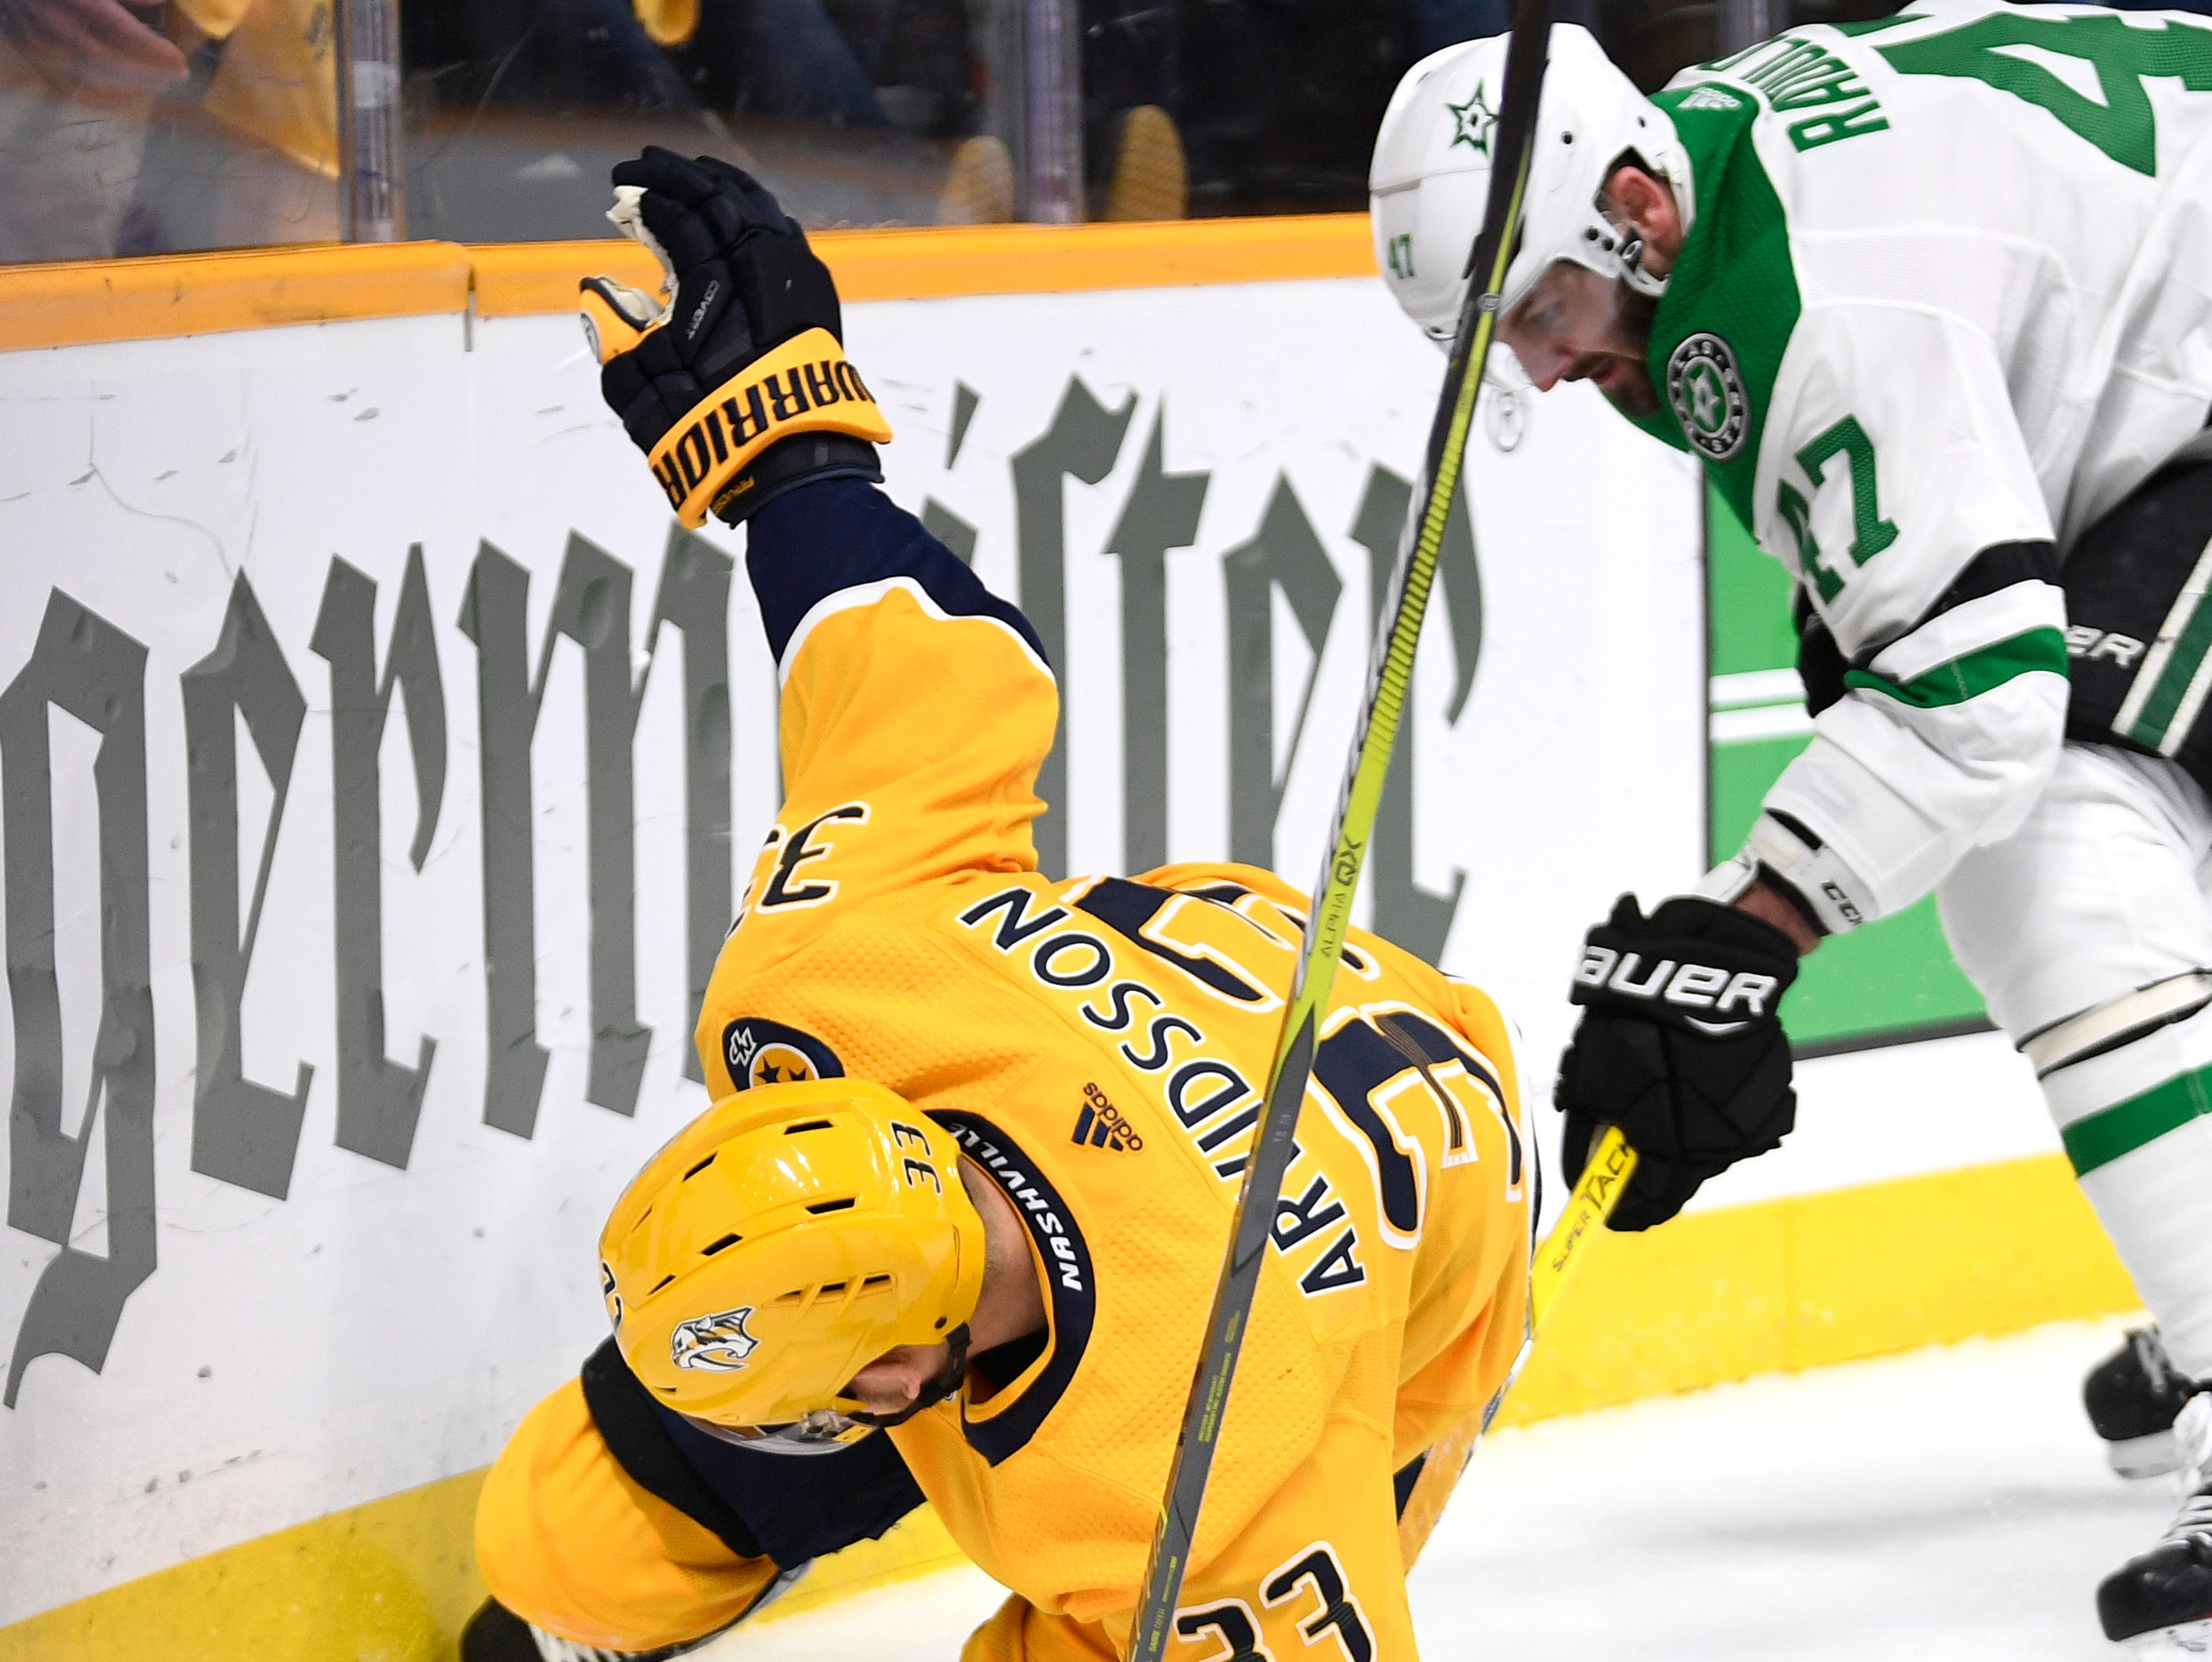 Nashville Predators right wing Viktor Arvidsson (33) battles for the puck with Dallas Stars right wing Alexander Radulov (47) during the first period of the divisional semifinal game at Bridgestone Arena in Nashville, Tenn., Saturday, April 13, 2019.